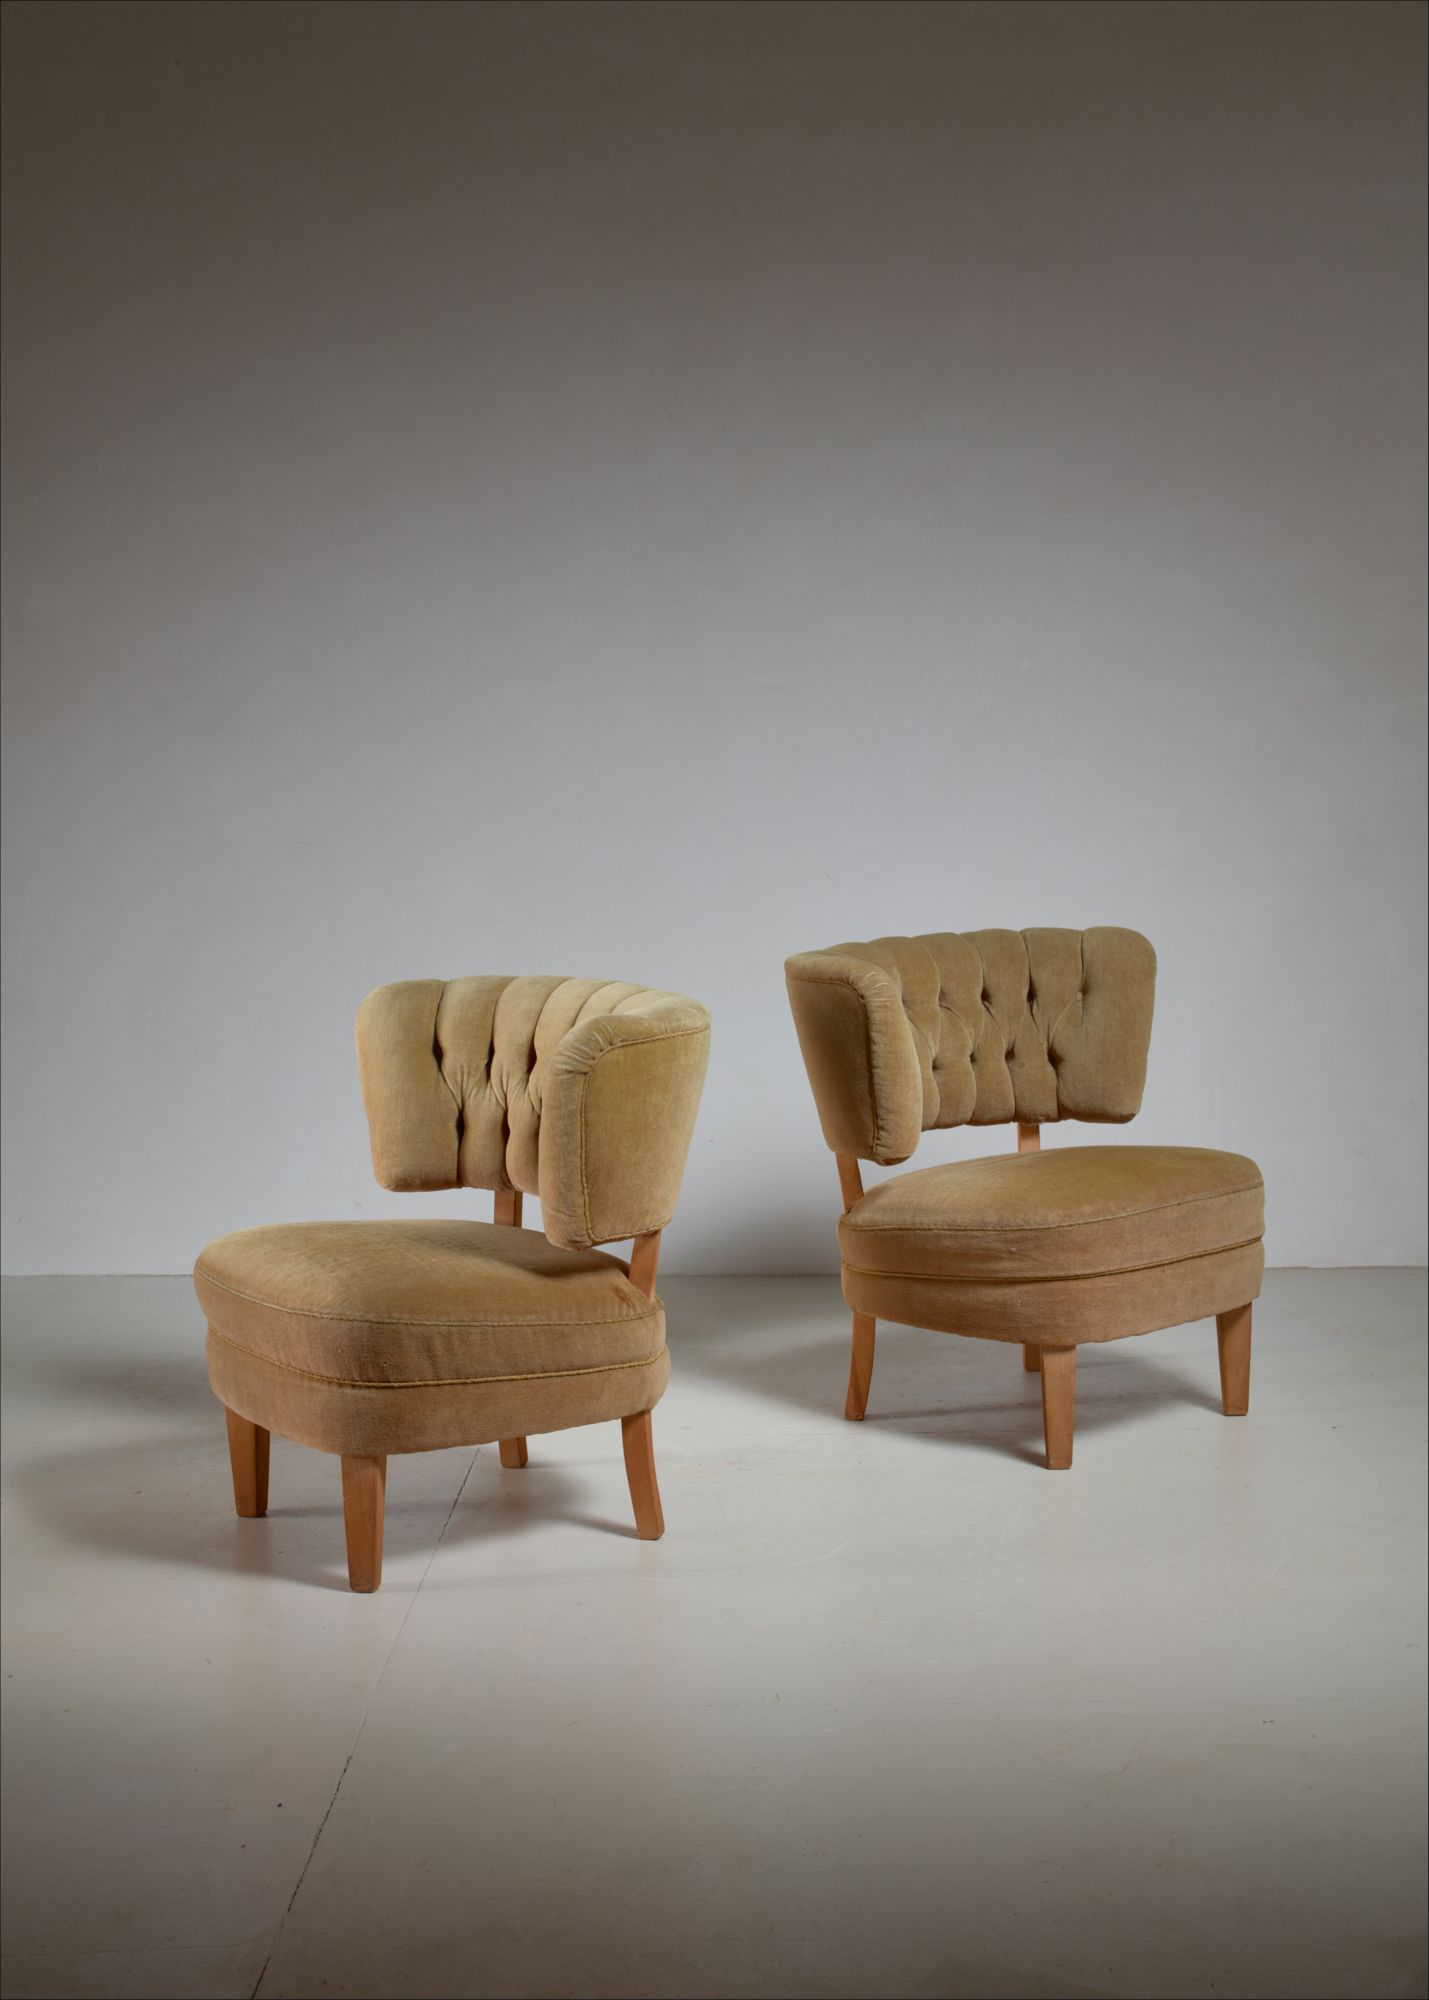 Fabulous Otto Schulz Pair Of Lounge Chairs By Jio Mobler Sweden 1940S Spiritservingveterans Wood Chair Design Ideas Spiritservingveteransorg